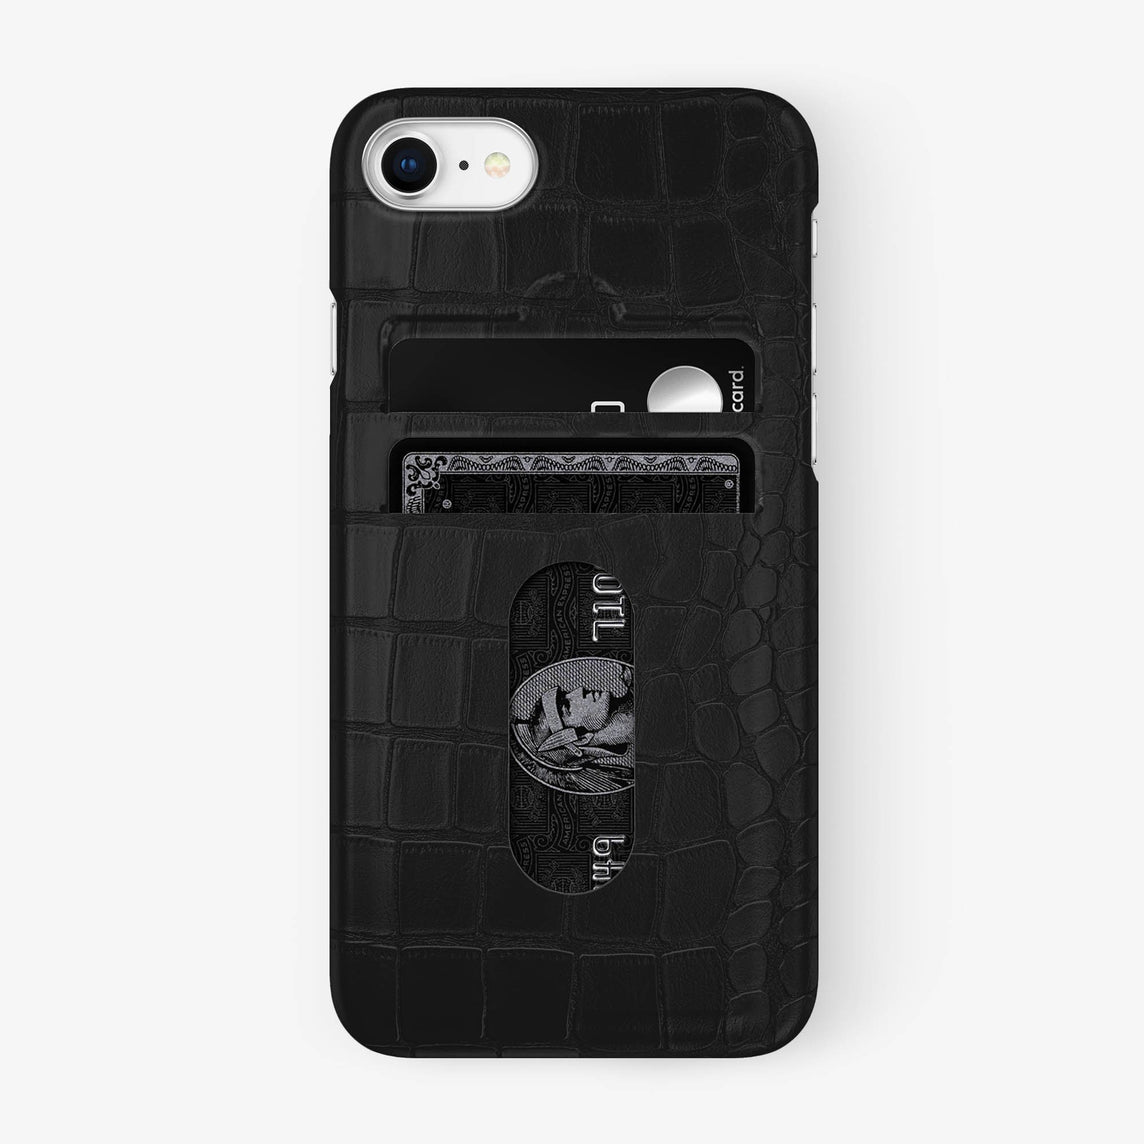 Alligator Card Holder Case iPhone 7/8 | Phantom Black - Stainless Steel - Hadoro